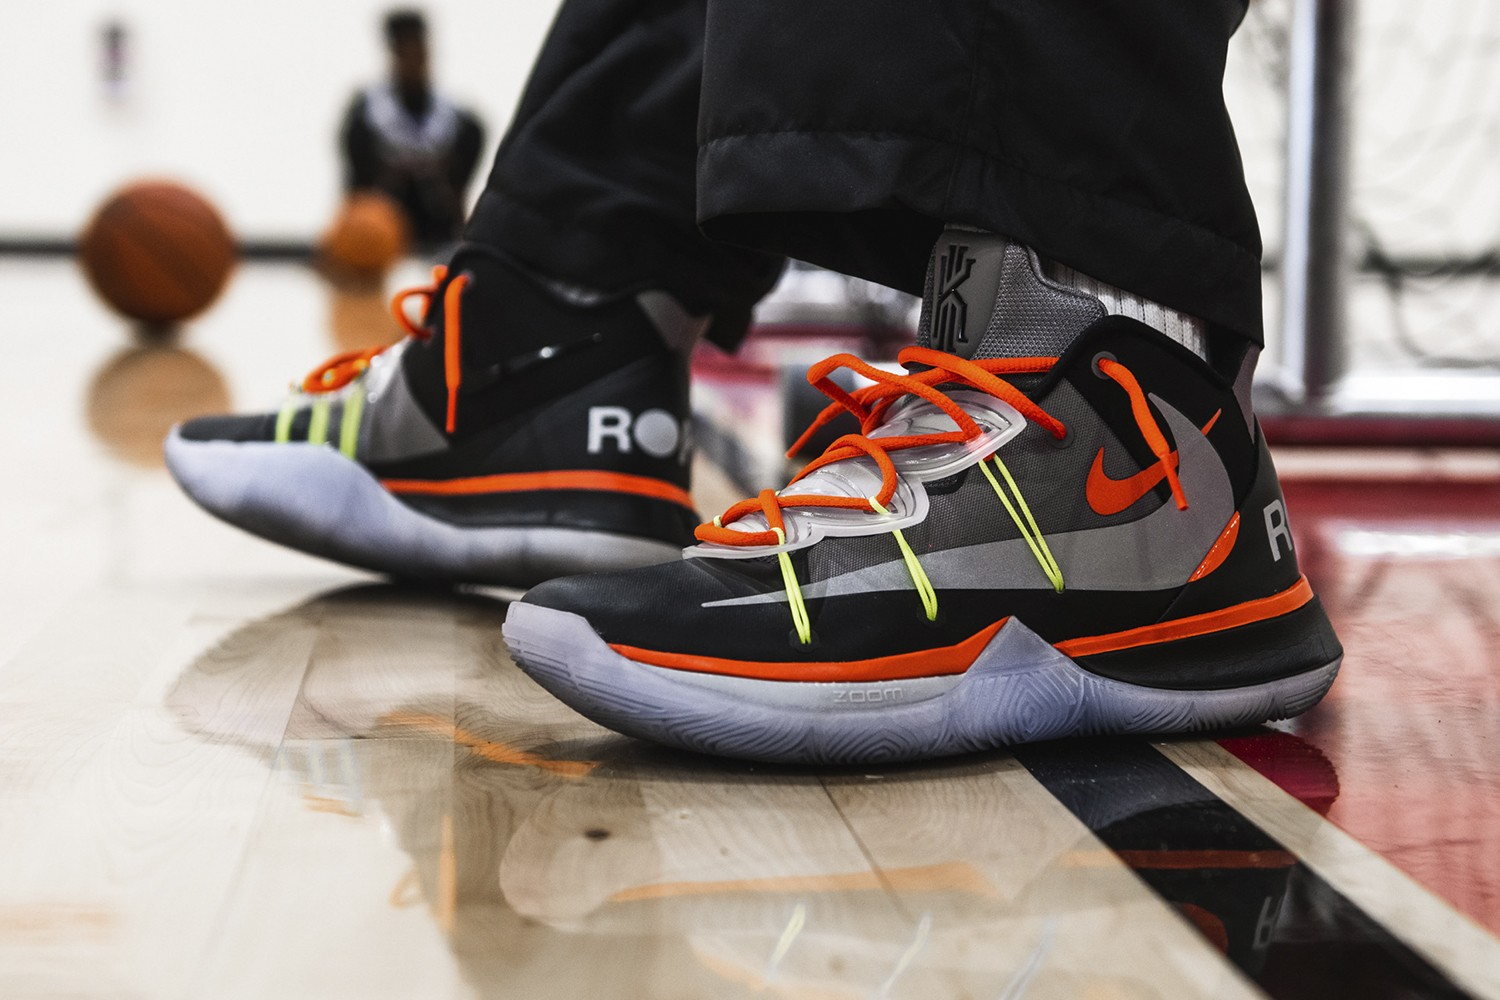 Limited Edition ROKIT x Nike Kyrie 5